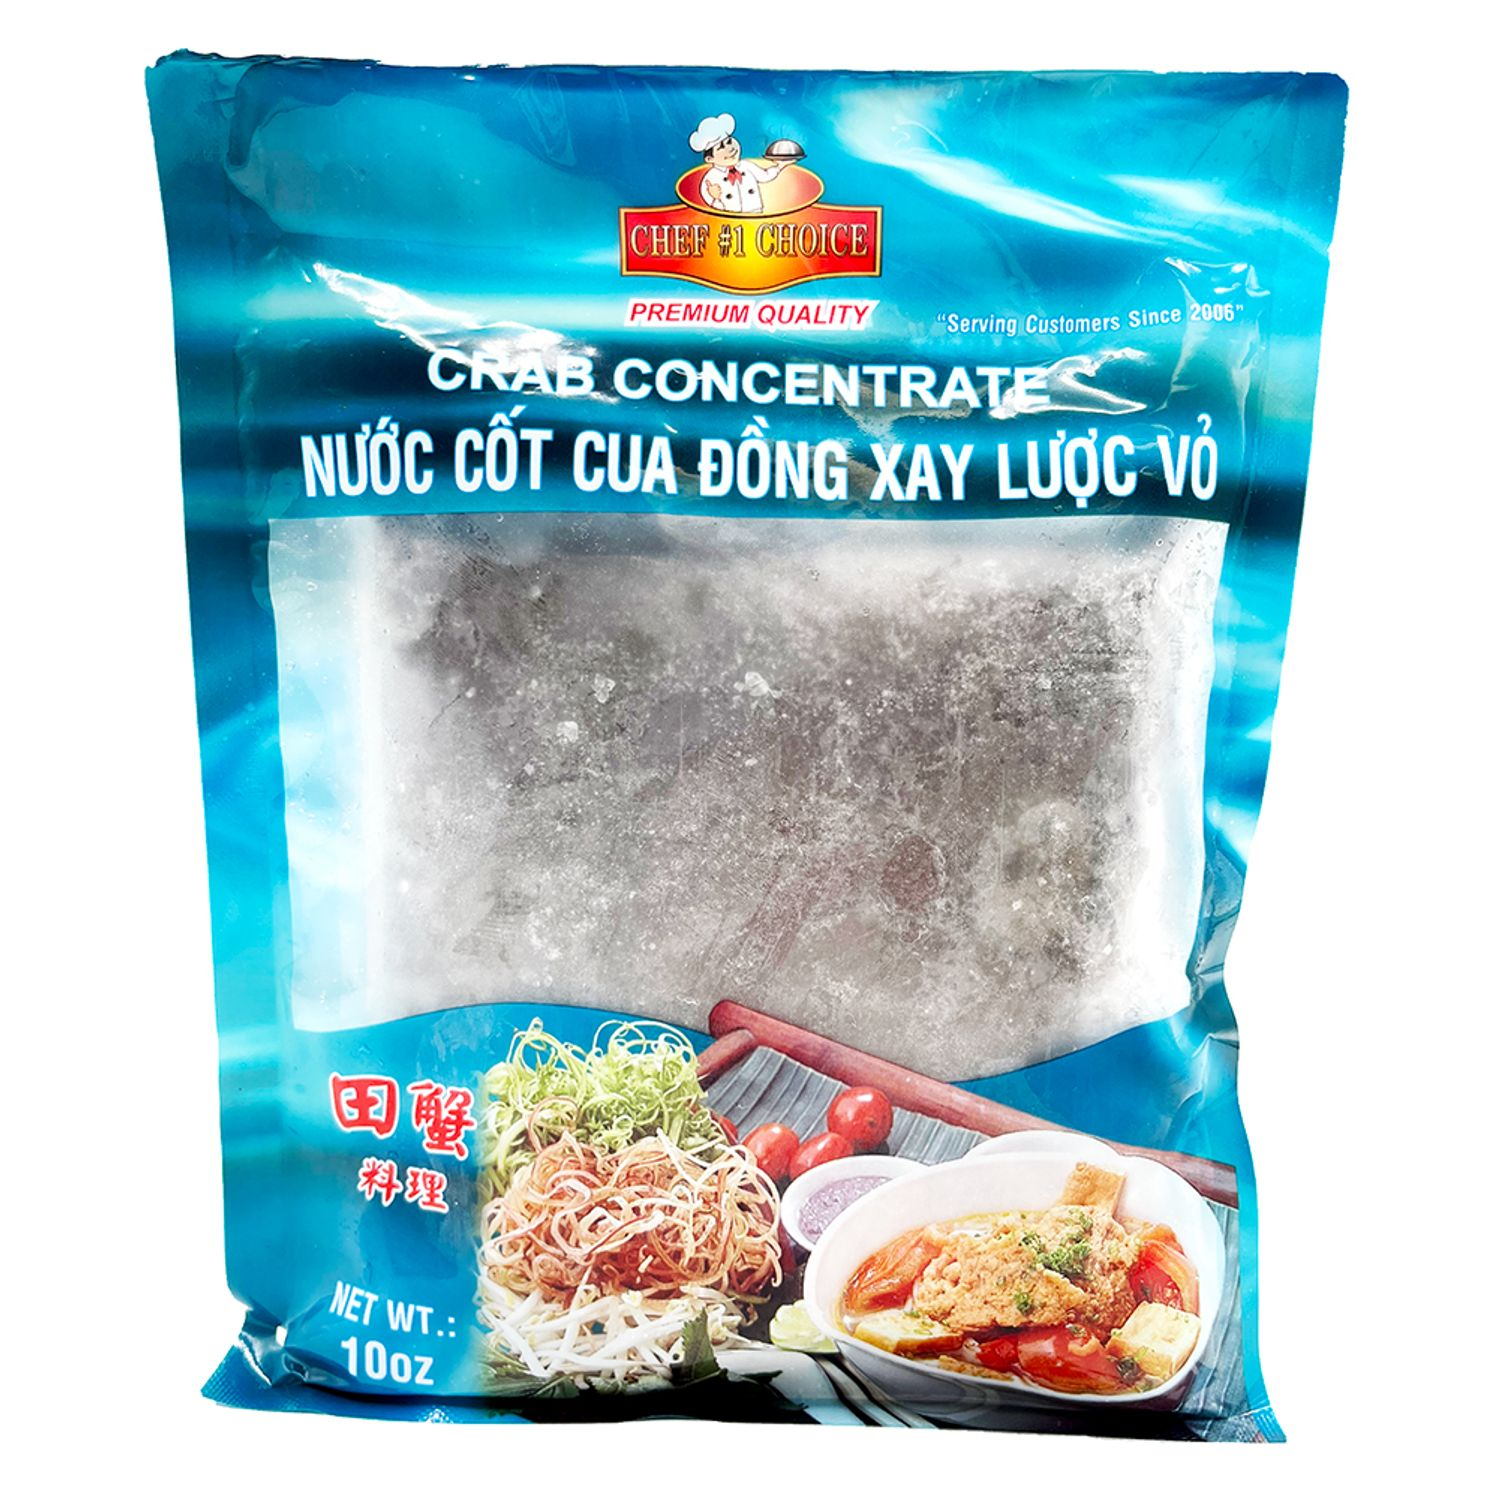 CHEF 1 CHOICE Prepare Crab Concentrate / Nuoc Cot Cua Dong Xay Luoc Vo 10 OZ [FROZEN]